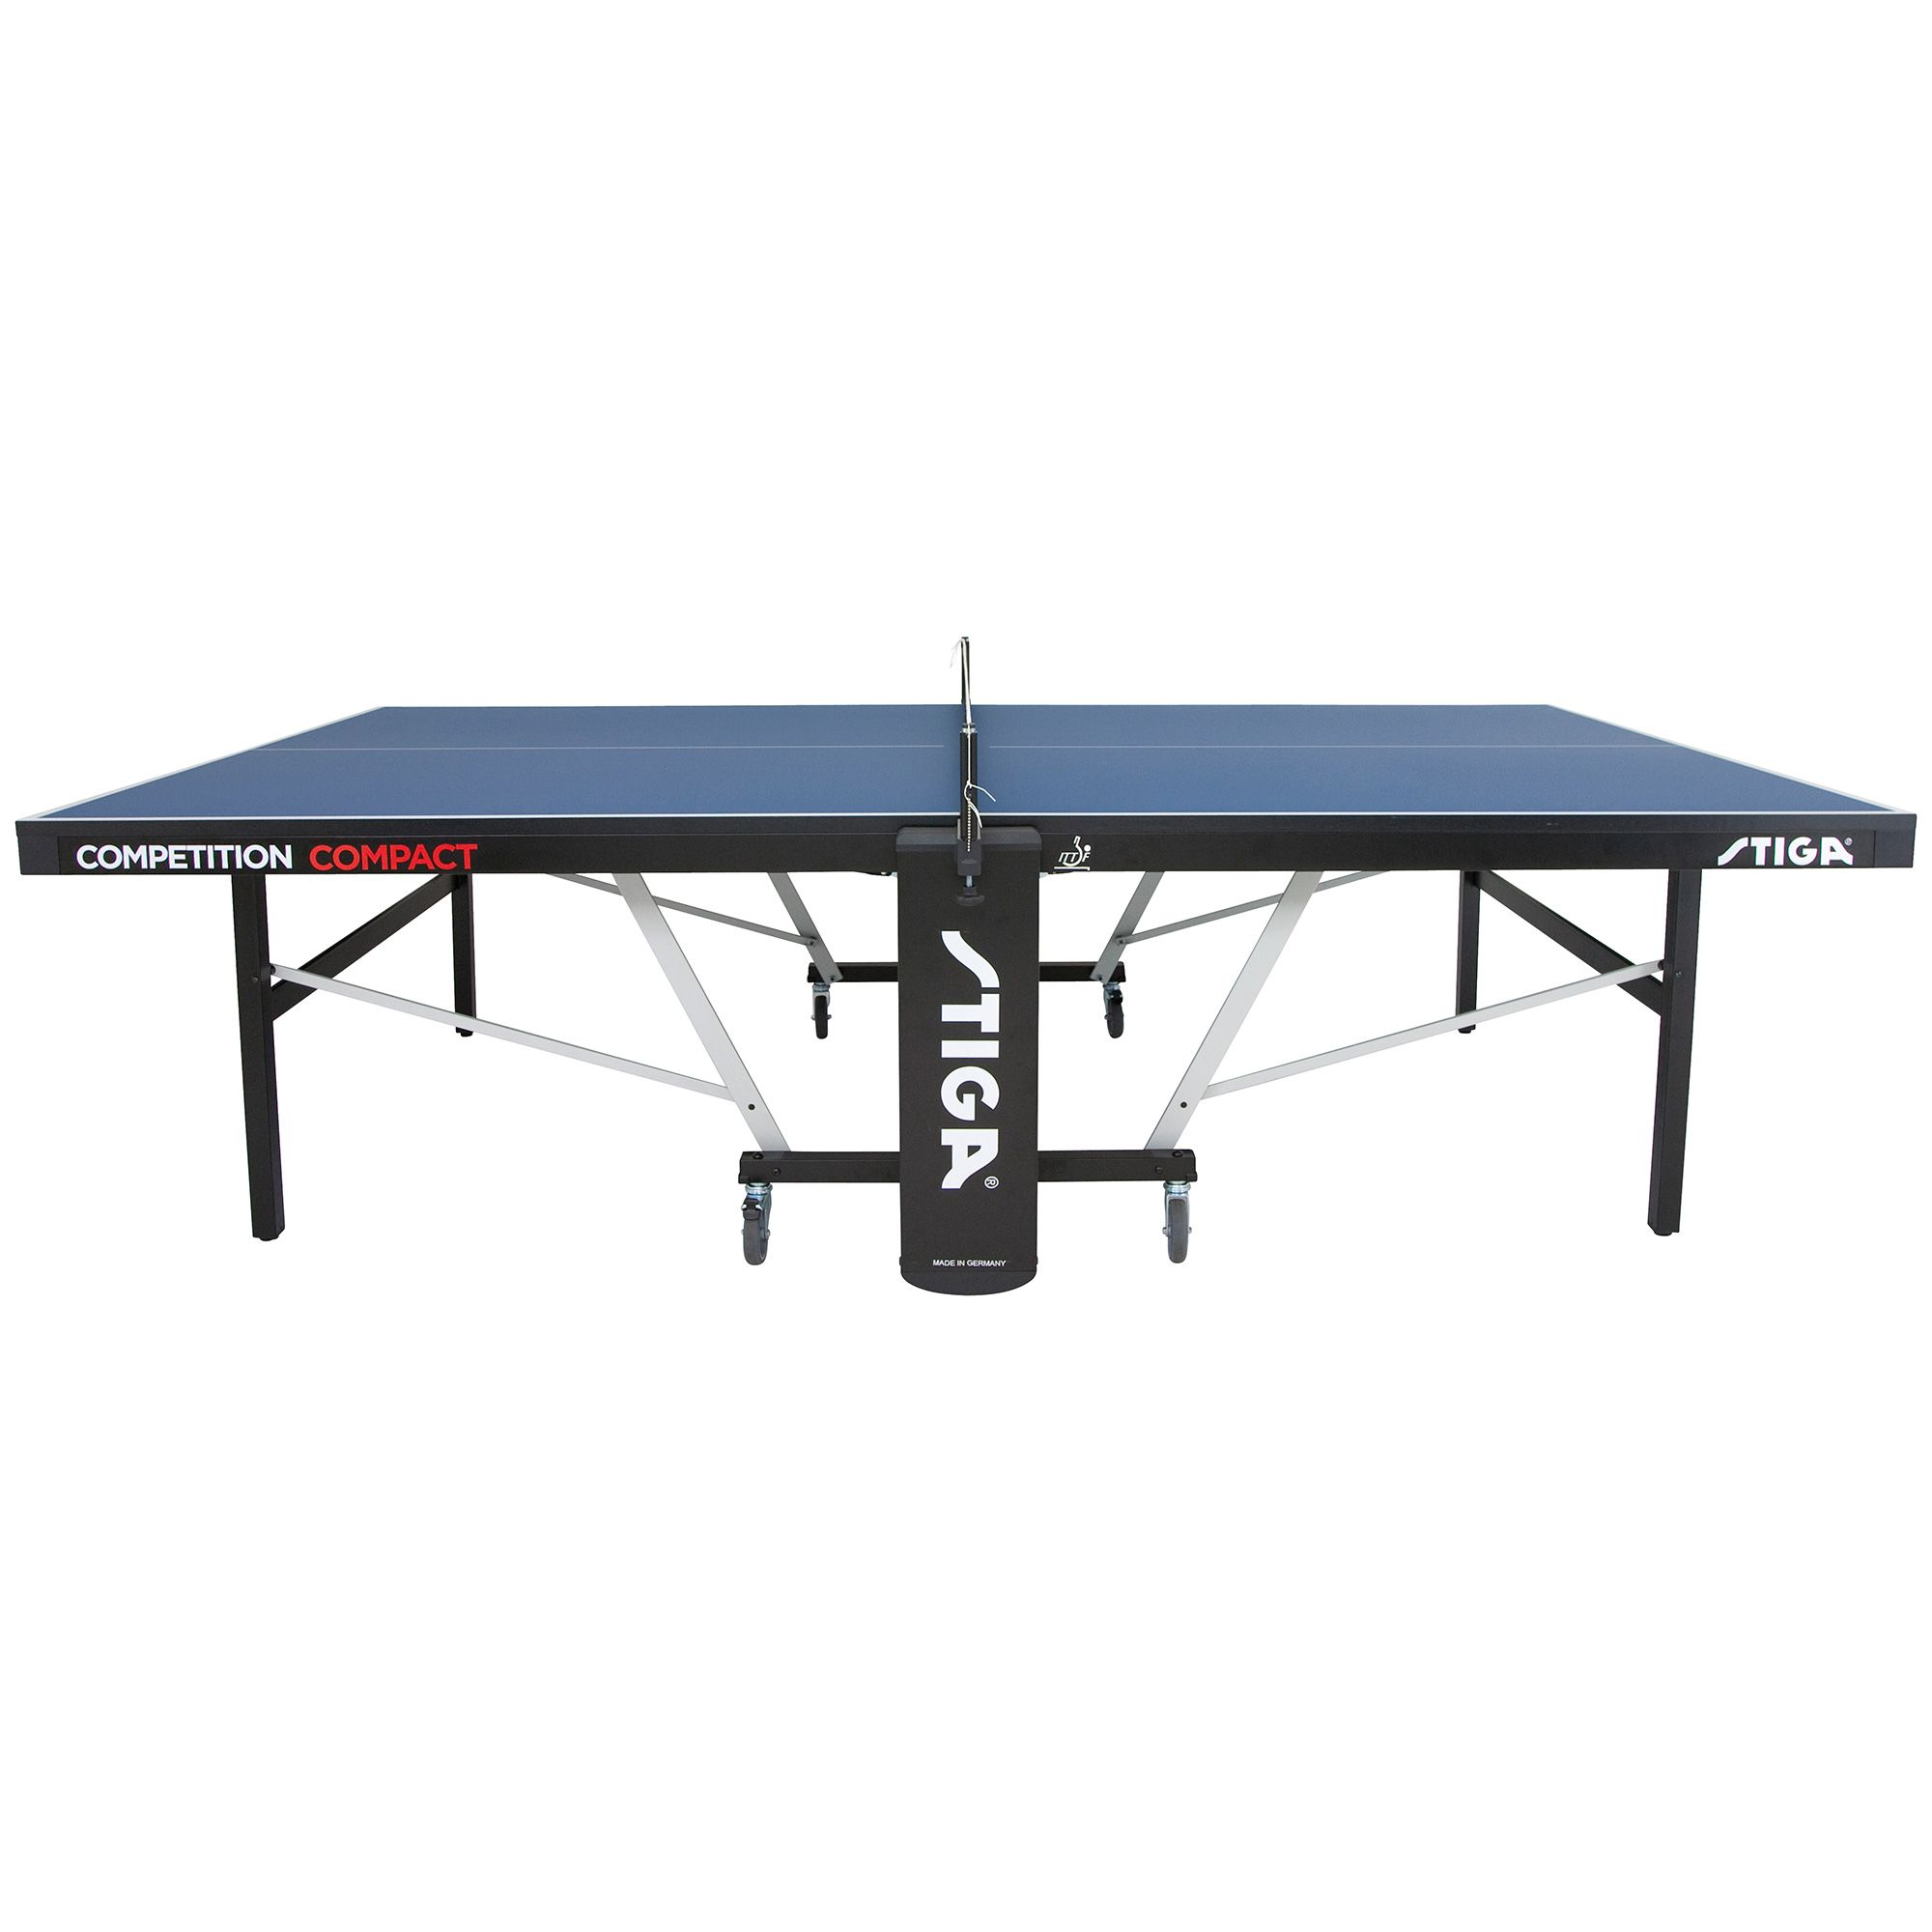 Stiga competition compact ittf indoor table tennis table - Used outdoor table tennis tables for sale ...